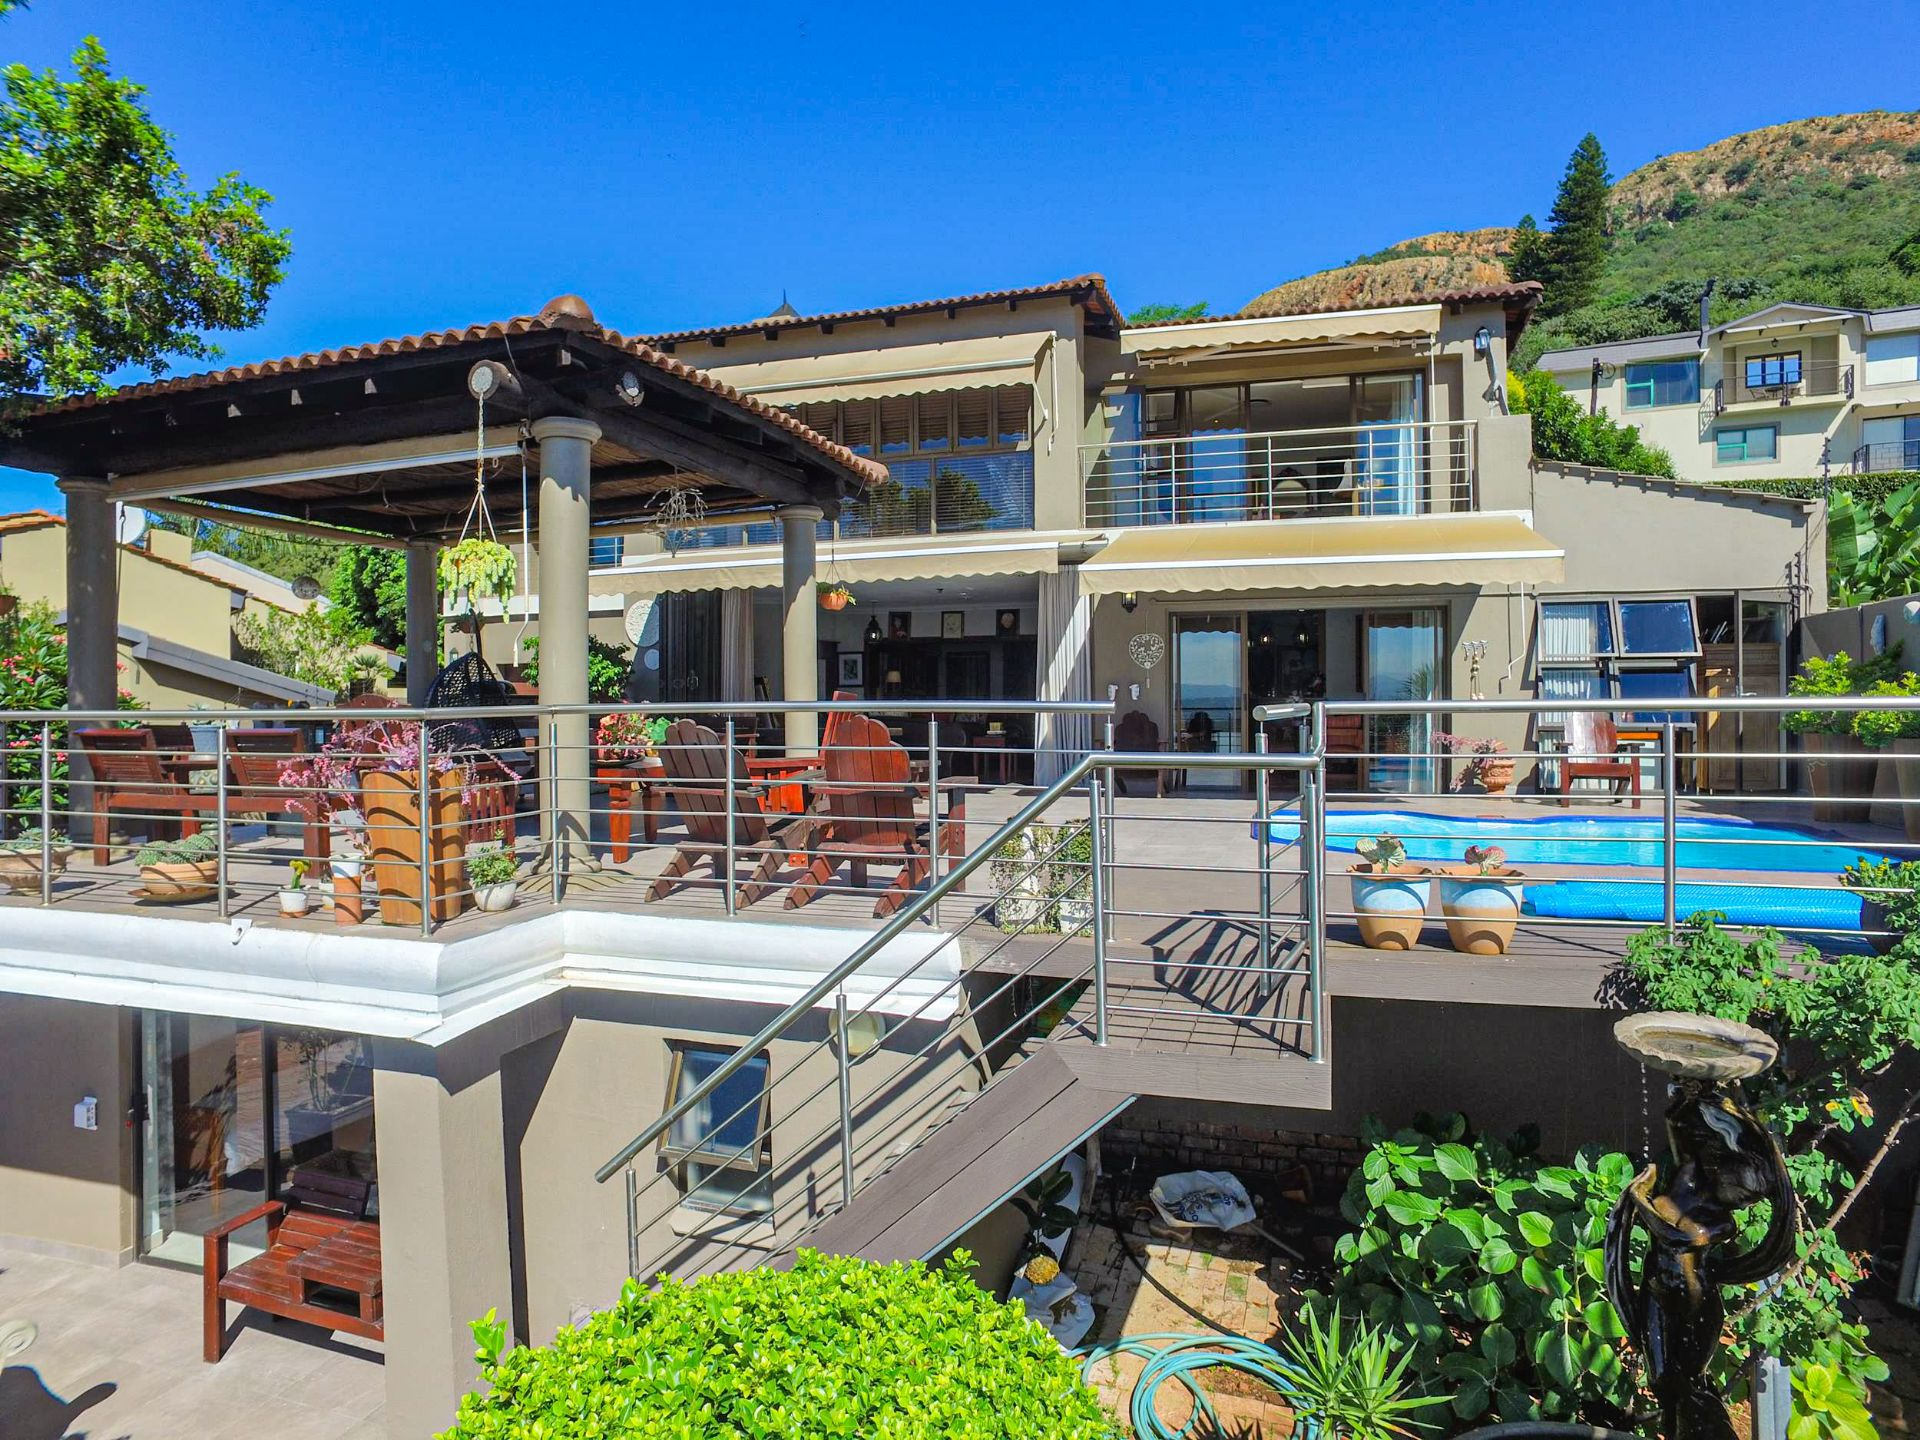 House in Kosmos Village - Fabulous home on the waterfront - what an opportunity!